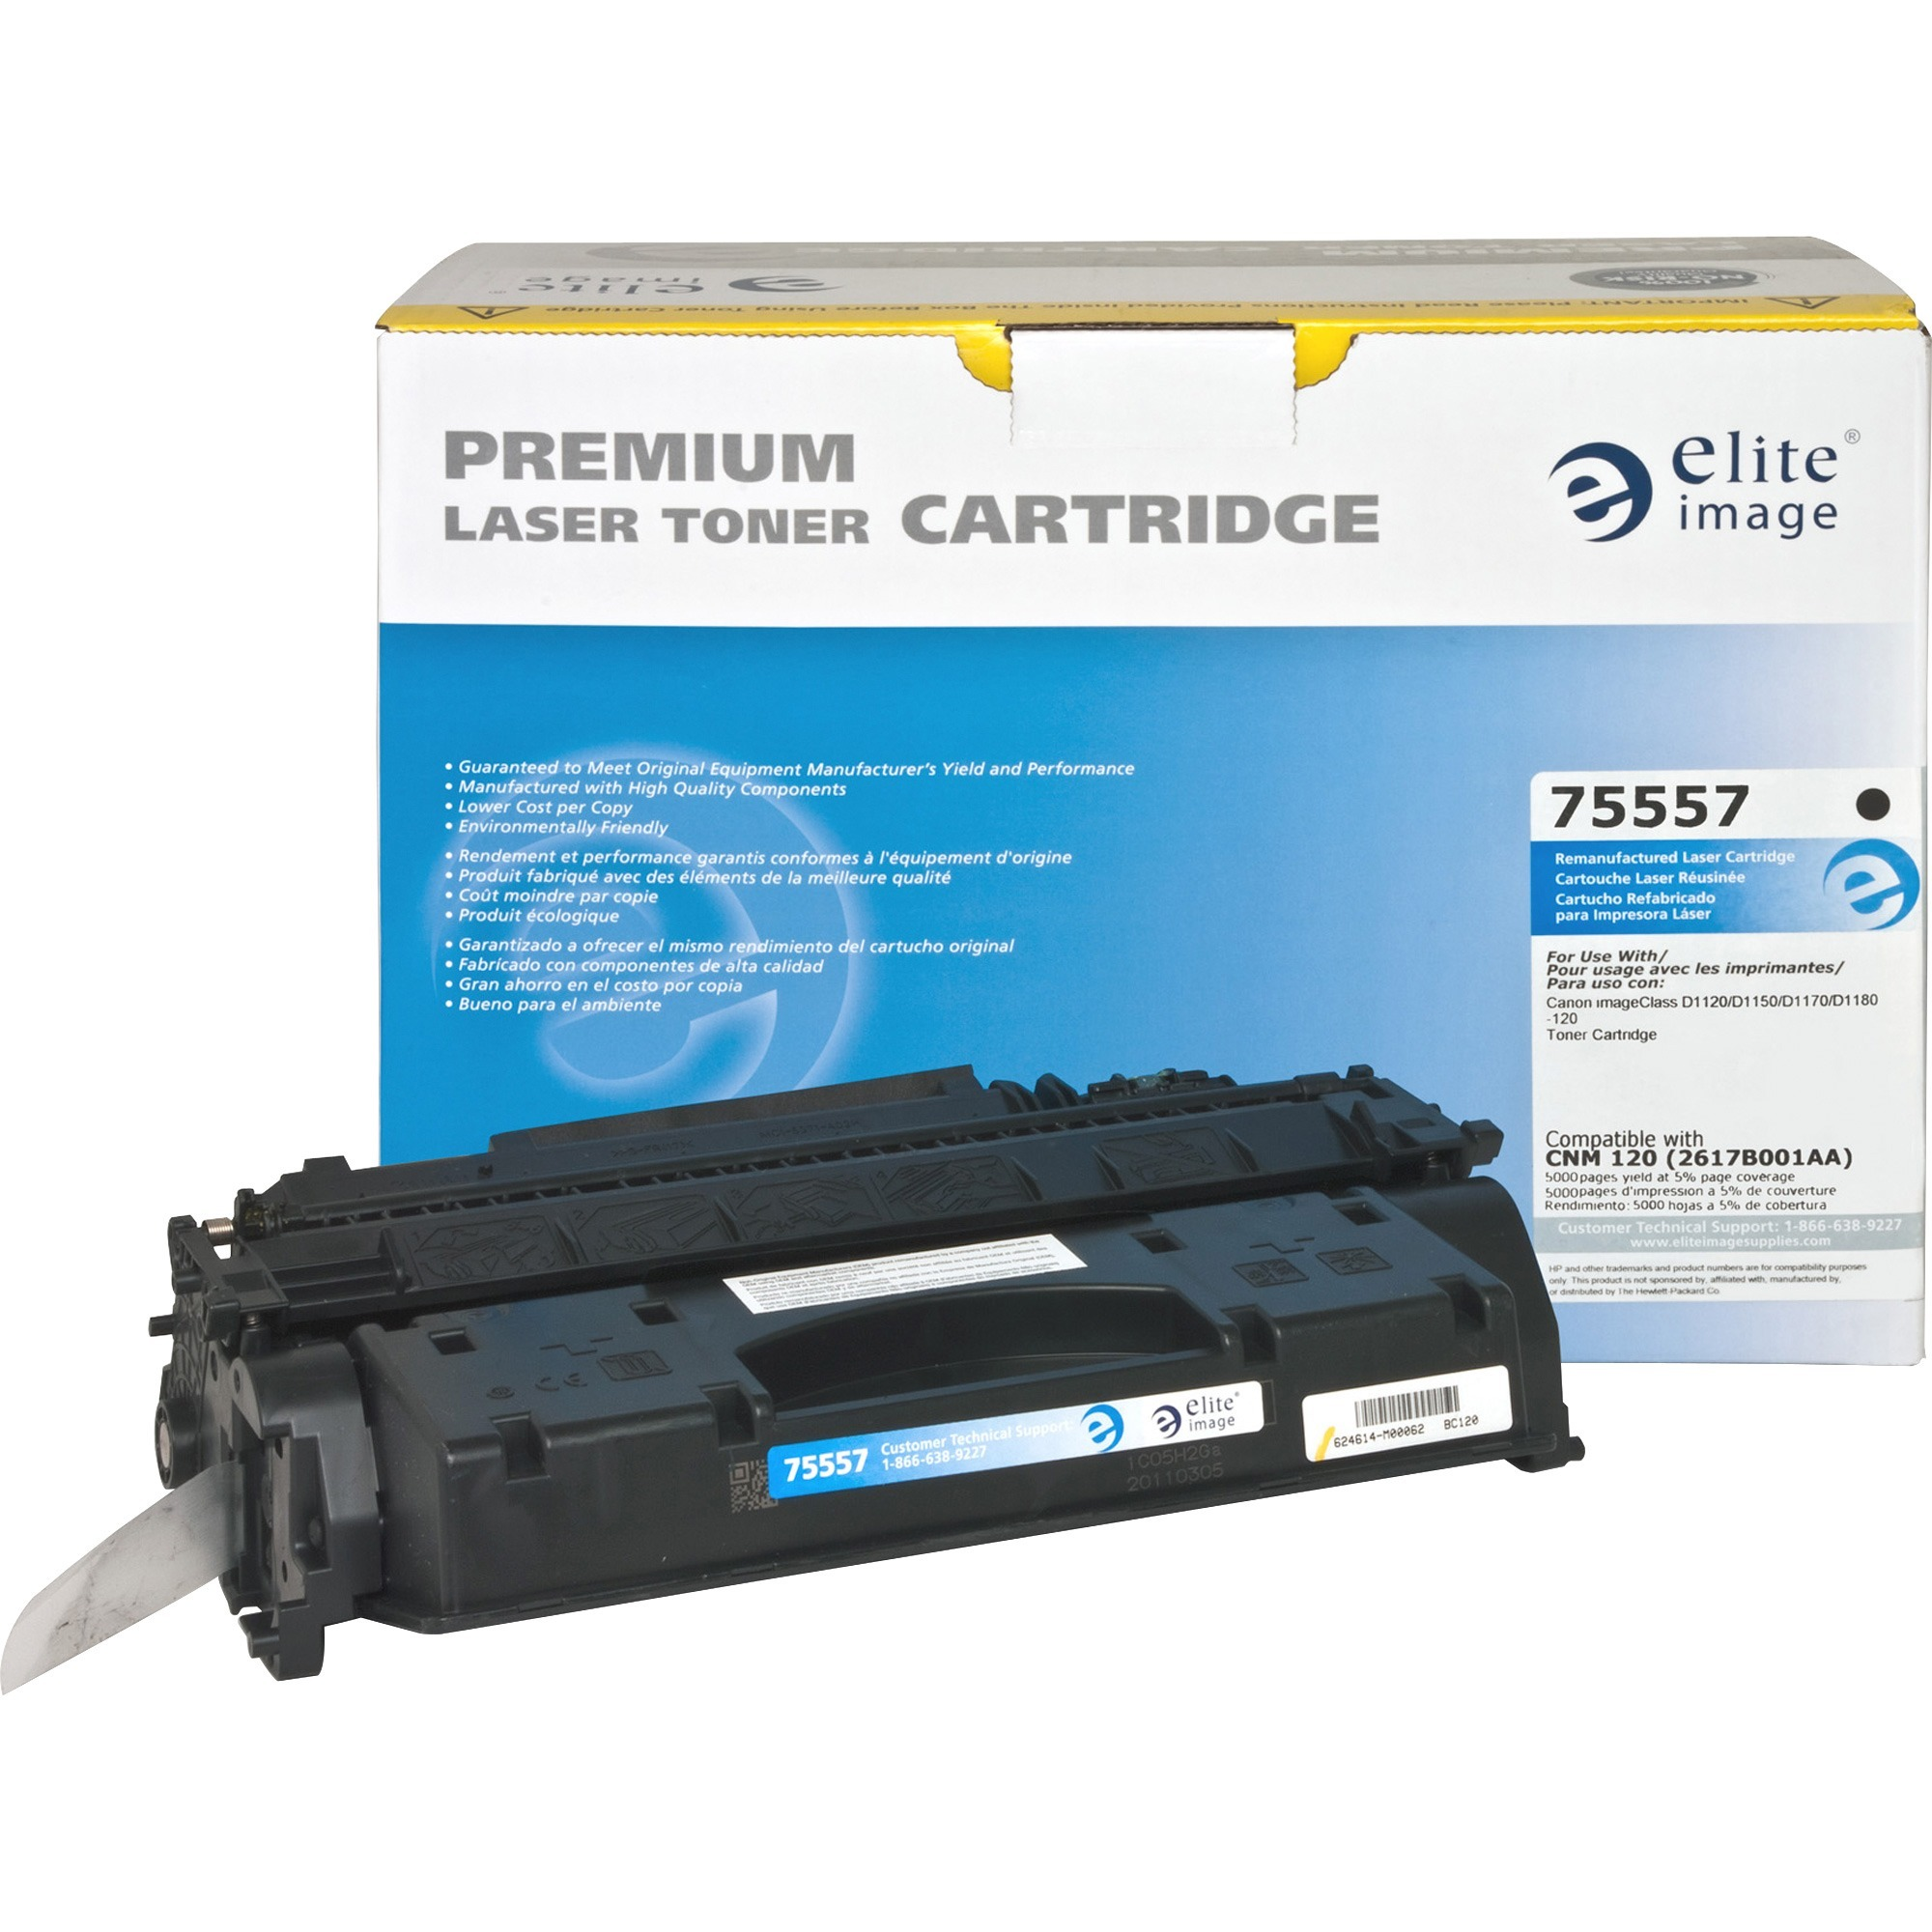 Elite Image, ELI75557, 75557 Remanufactured Canon 120 Toner Cartridge, 1 Each